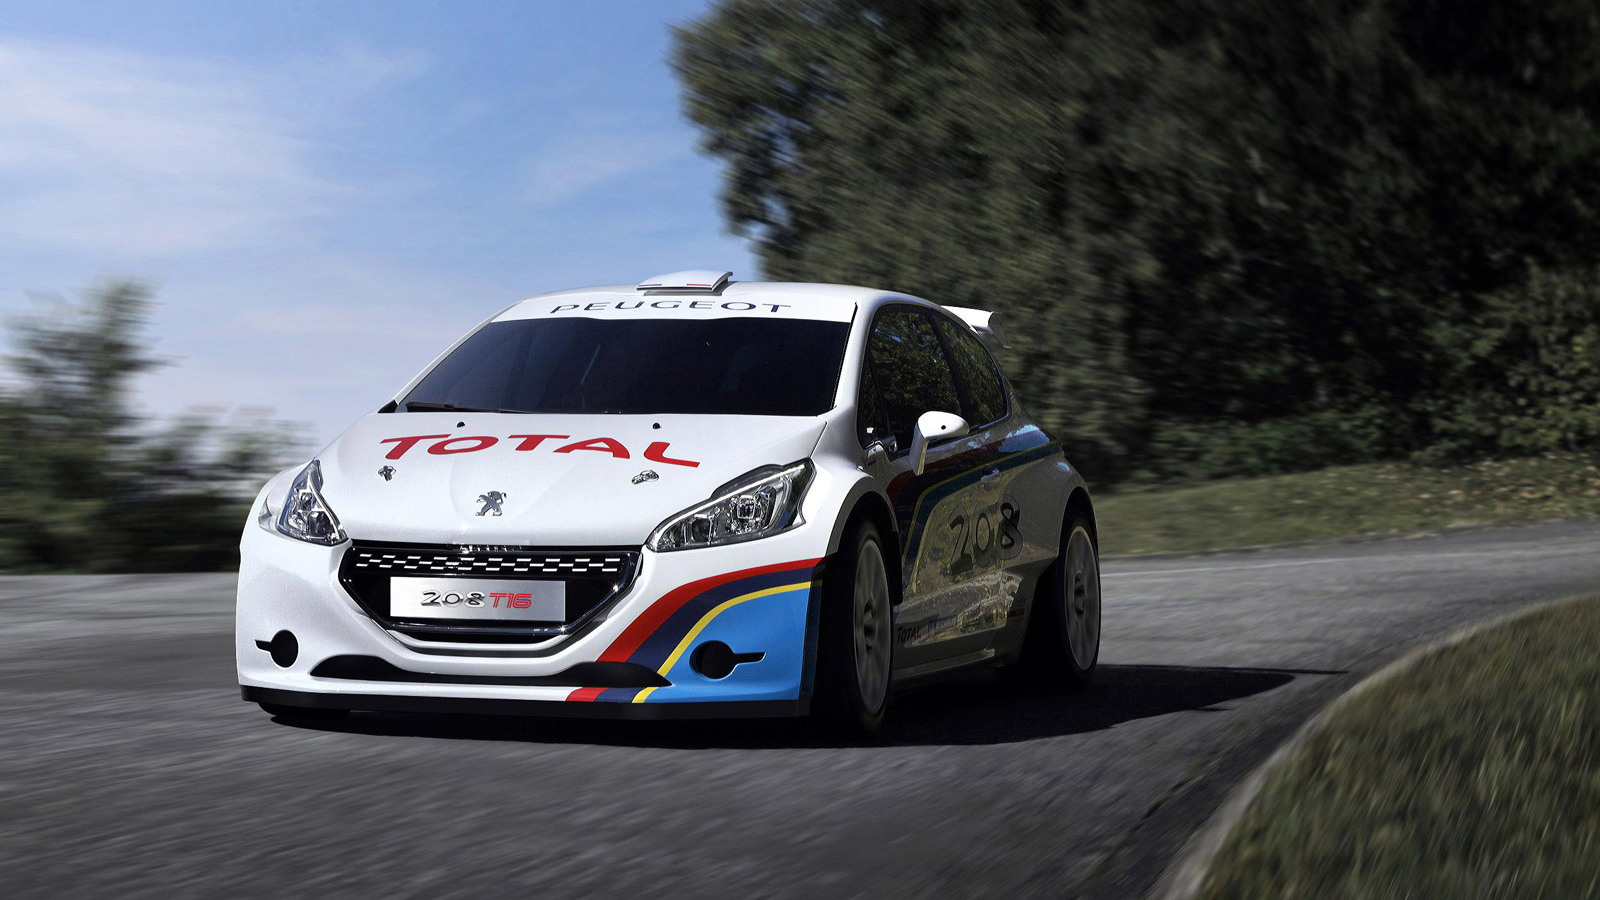 2013 Peugeot 208 T16 Pikes Peak rally car